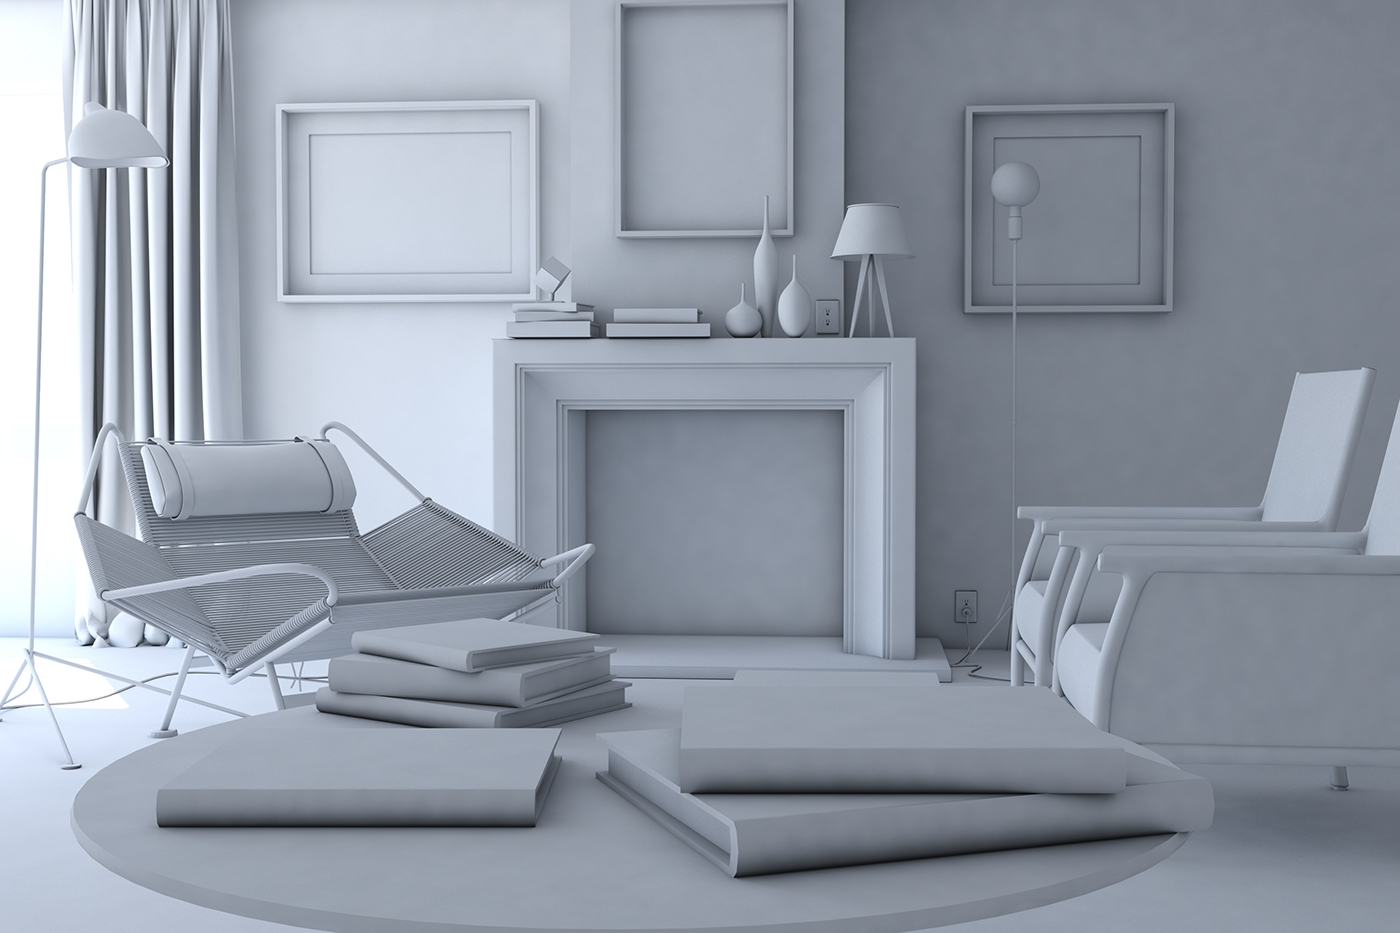 Living room interior on behance for Interior modeling in 3ds max